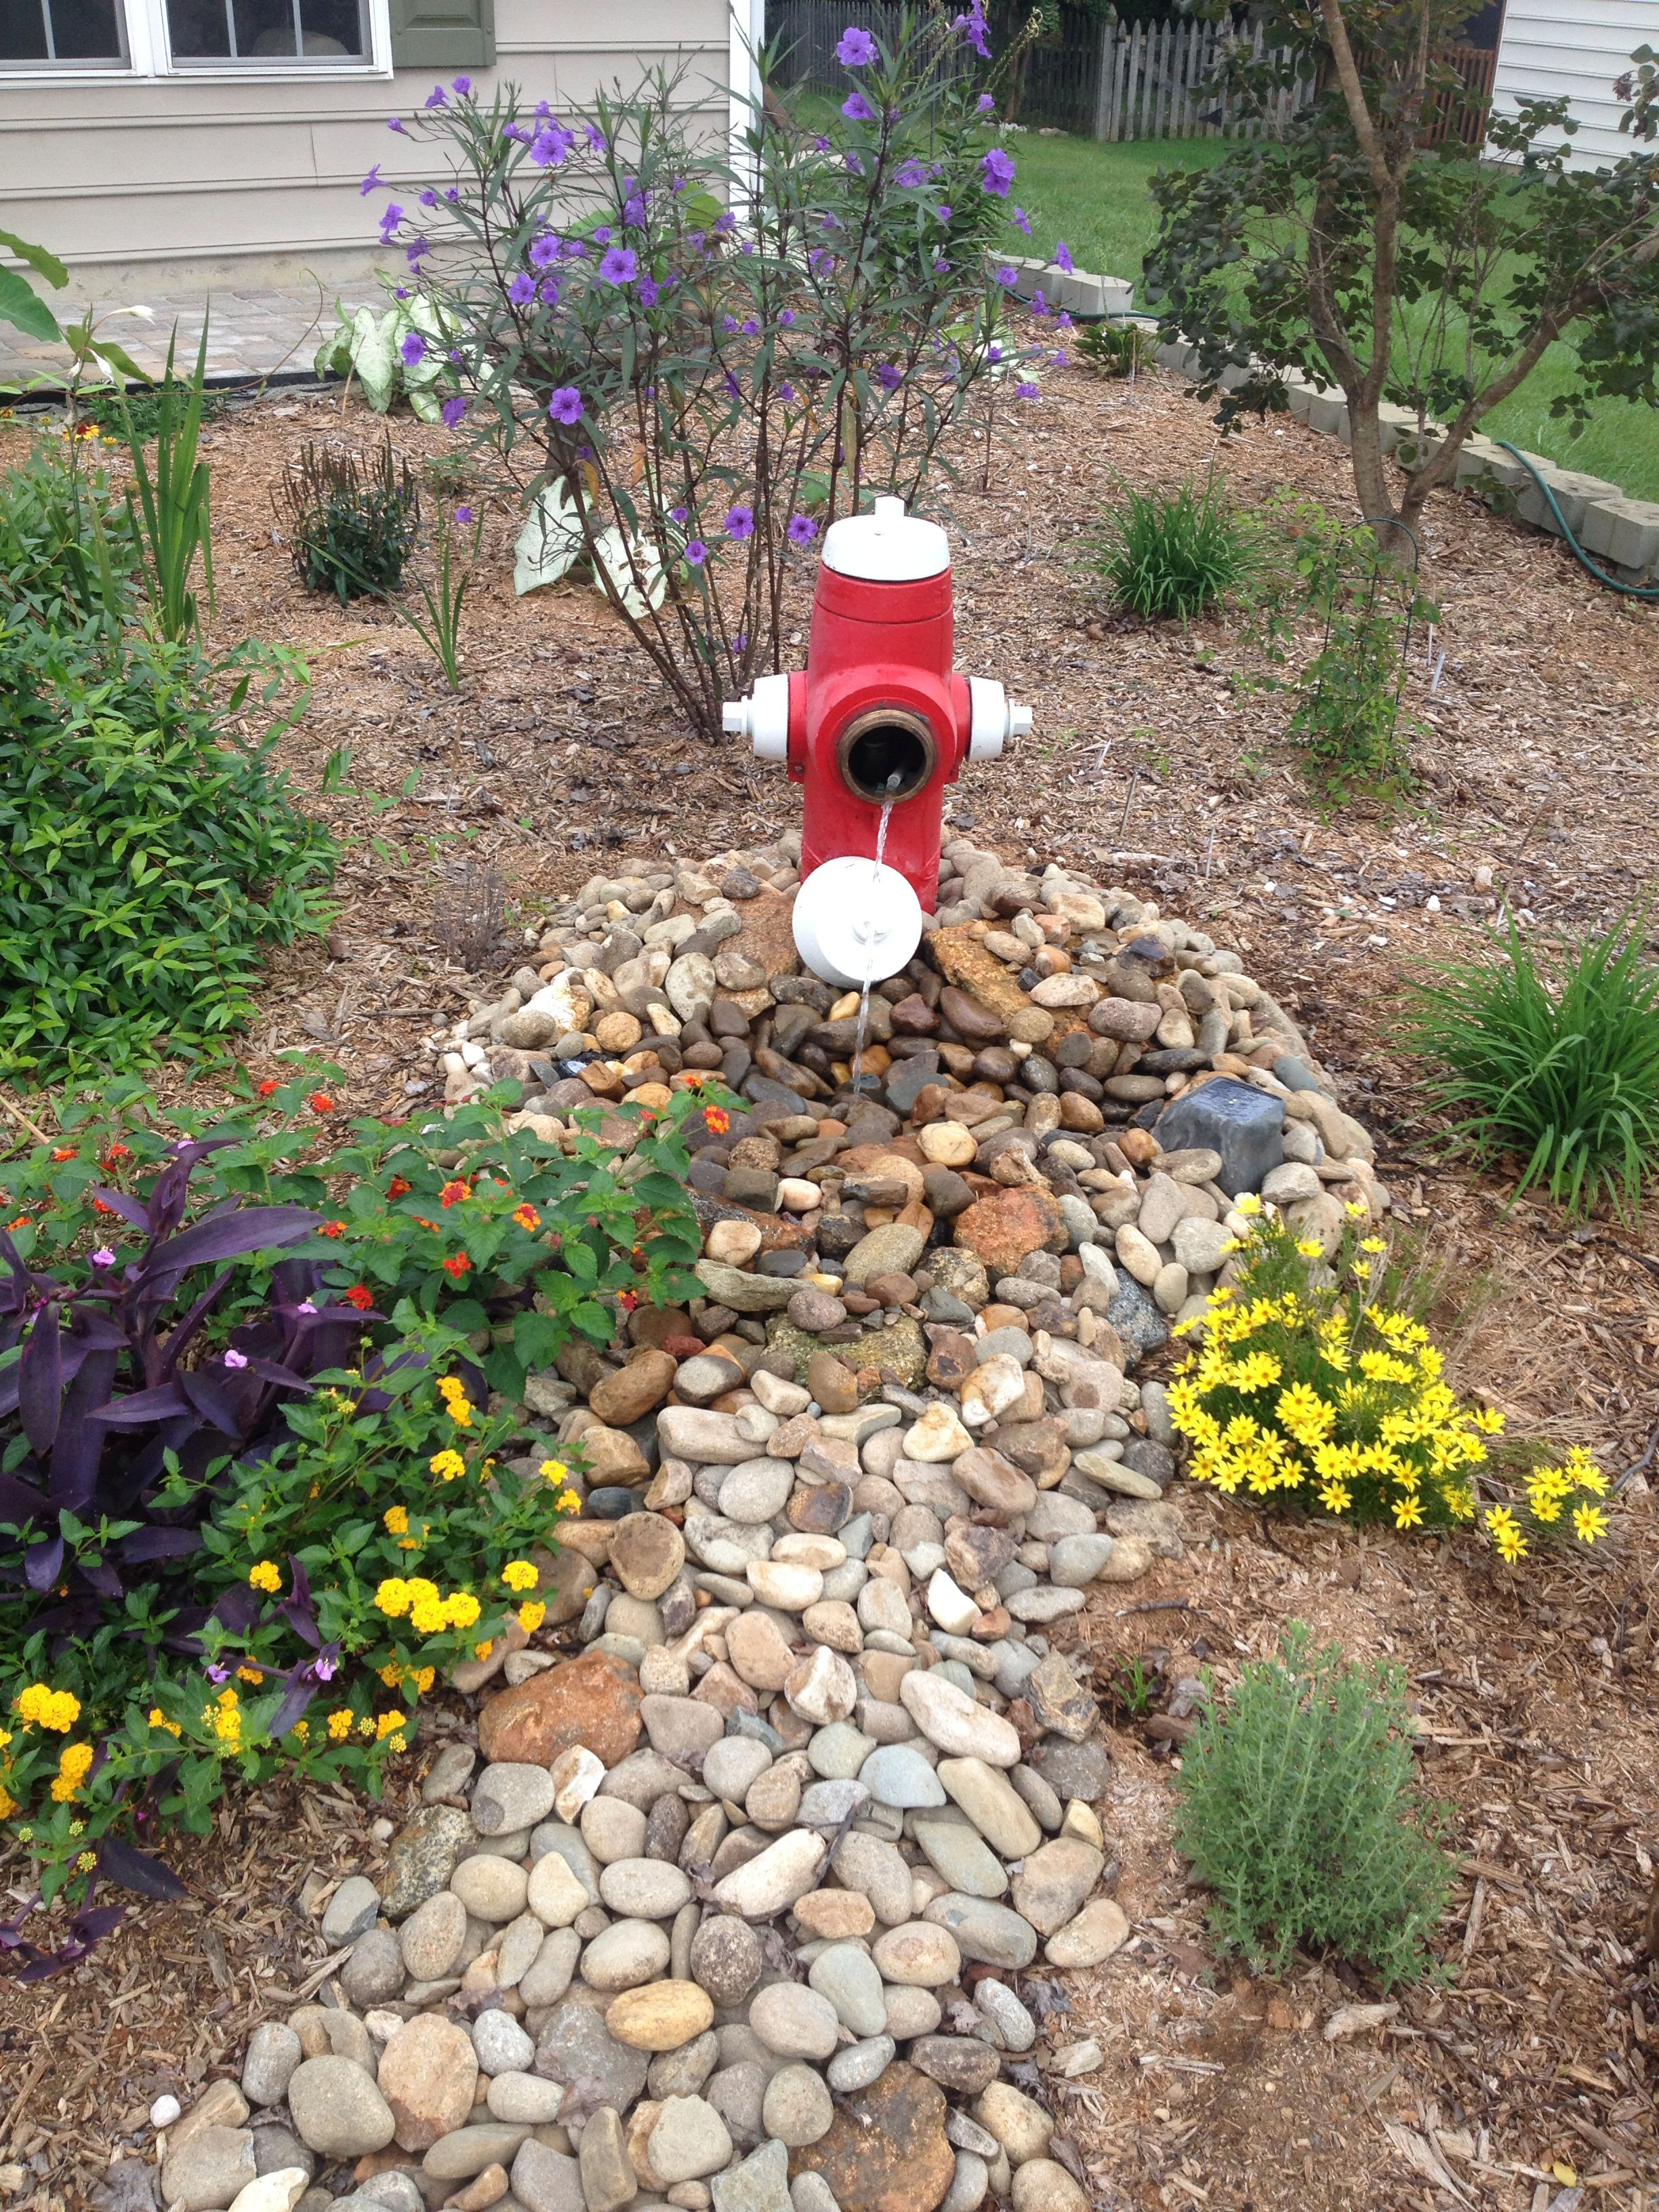 Fire Hydrant Fountain Indoor Water Garden Water Features In The Garden Landscaping With Rocks